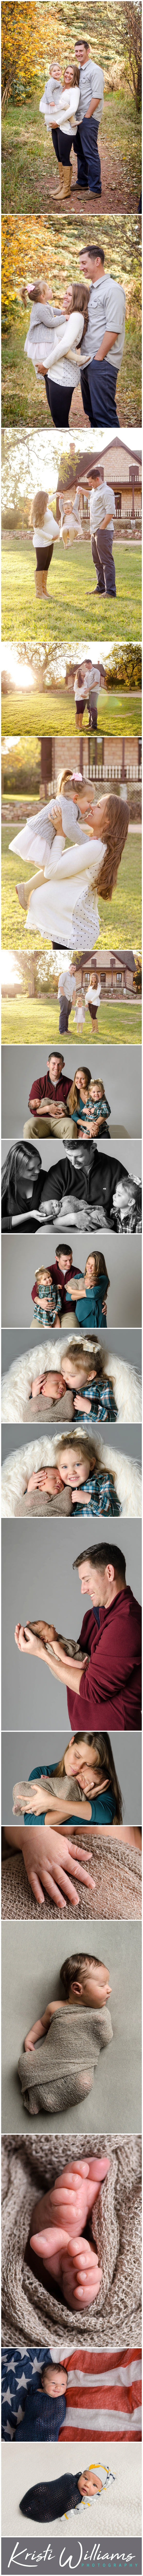 maternity_newborn_photography_colorado_springs.jpg